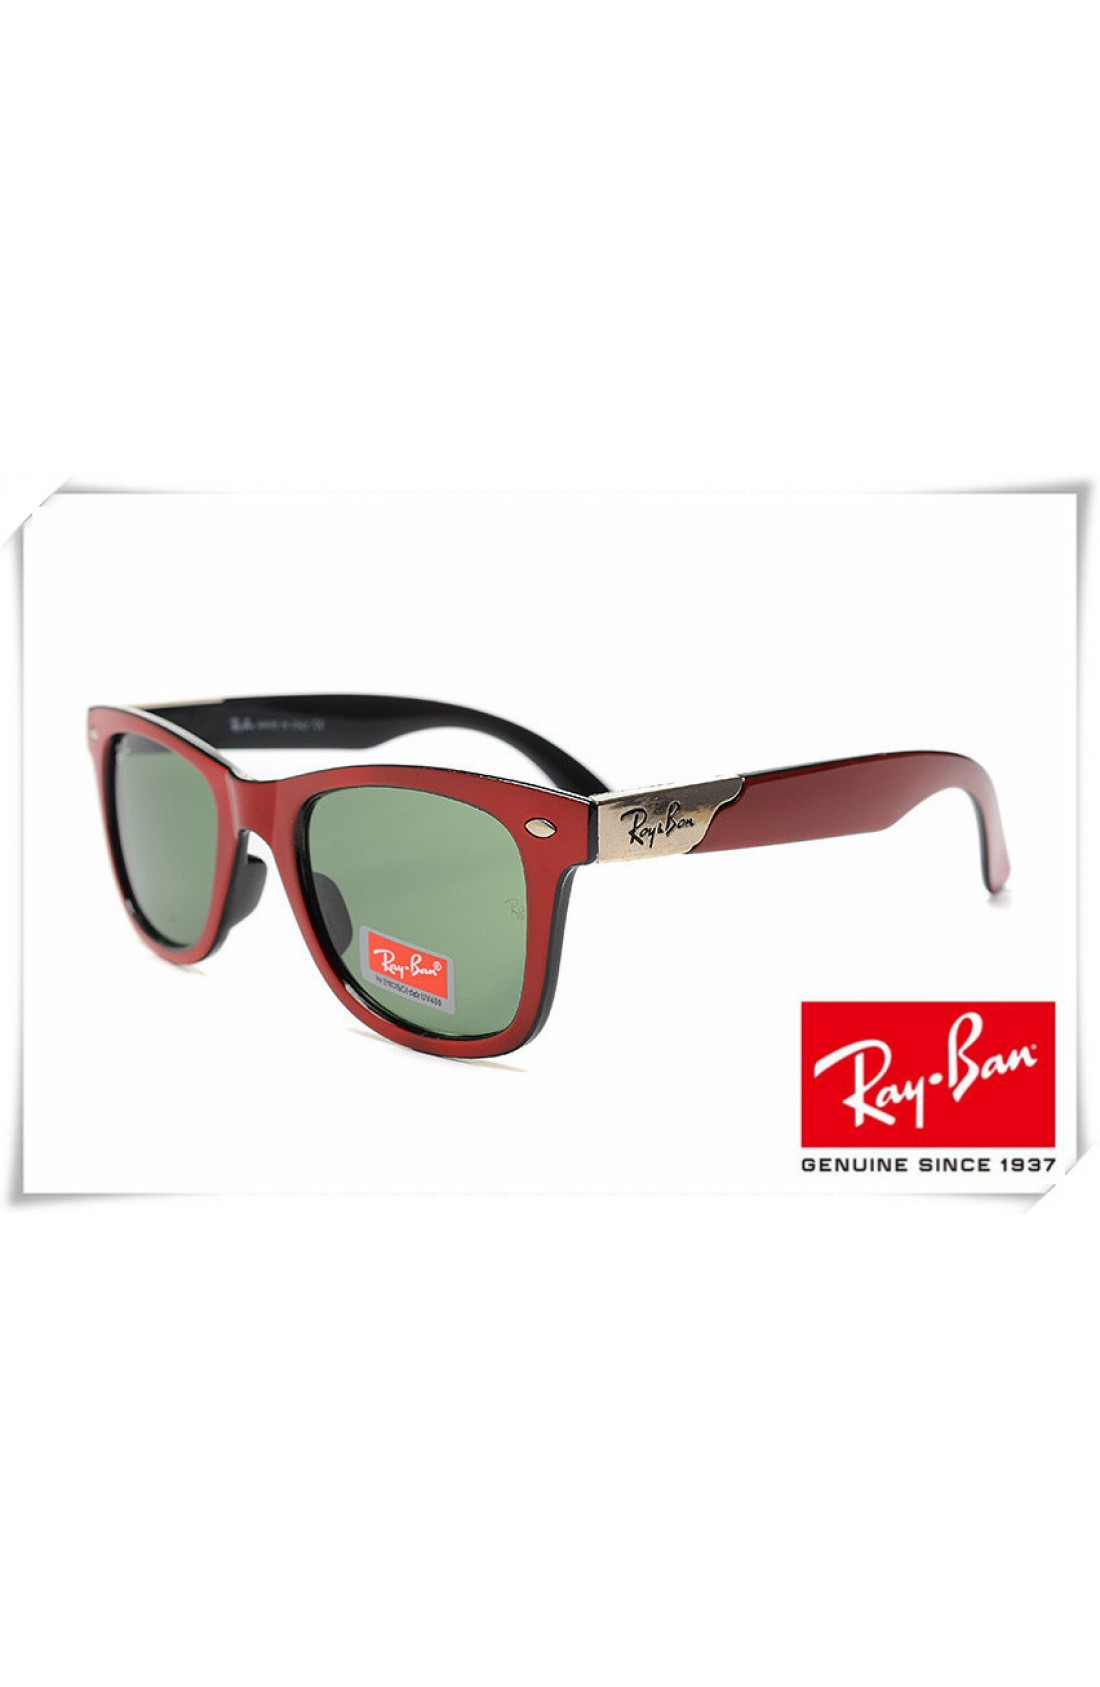 10081455ffdb5 Ray Bans Red And Black « One More Soul